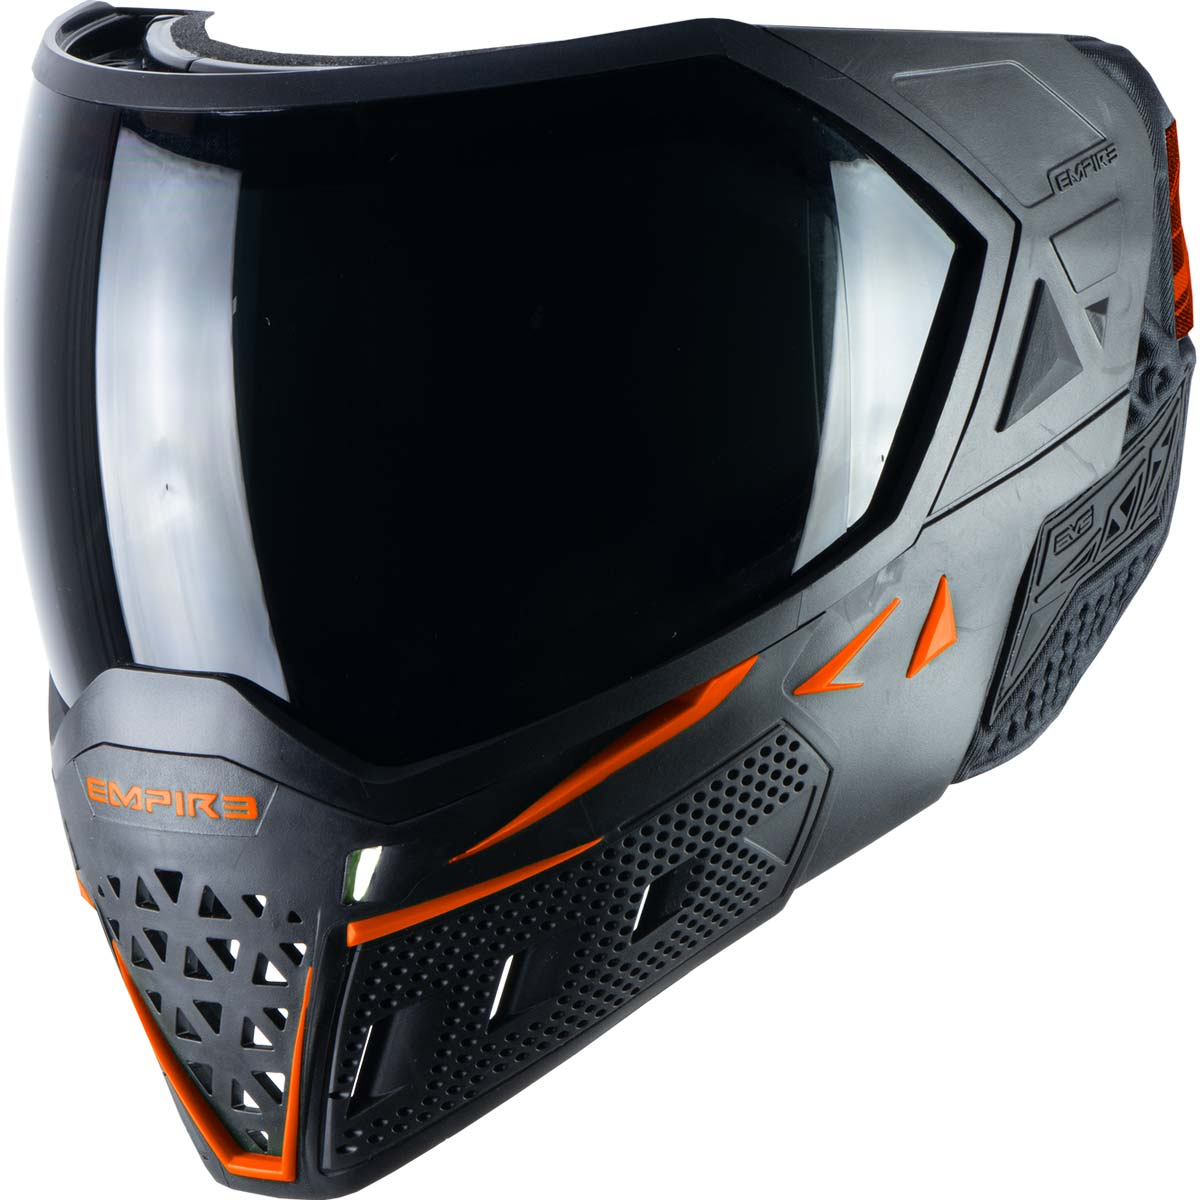 Empire EVS Paintball Mask Black Orange with Extra Lens